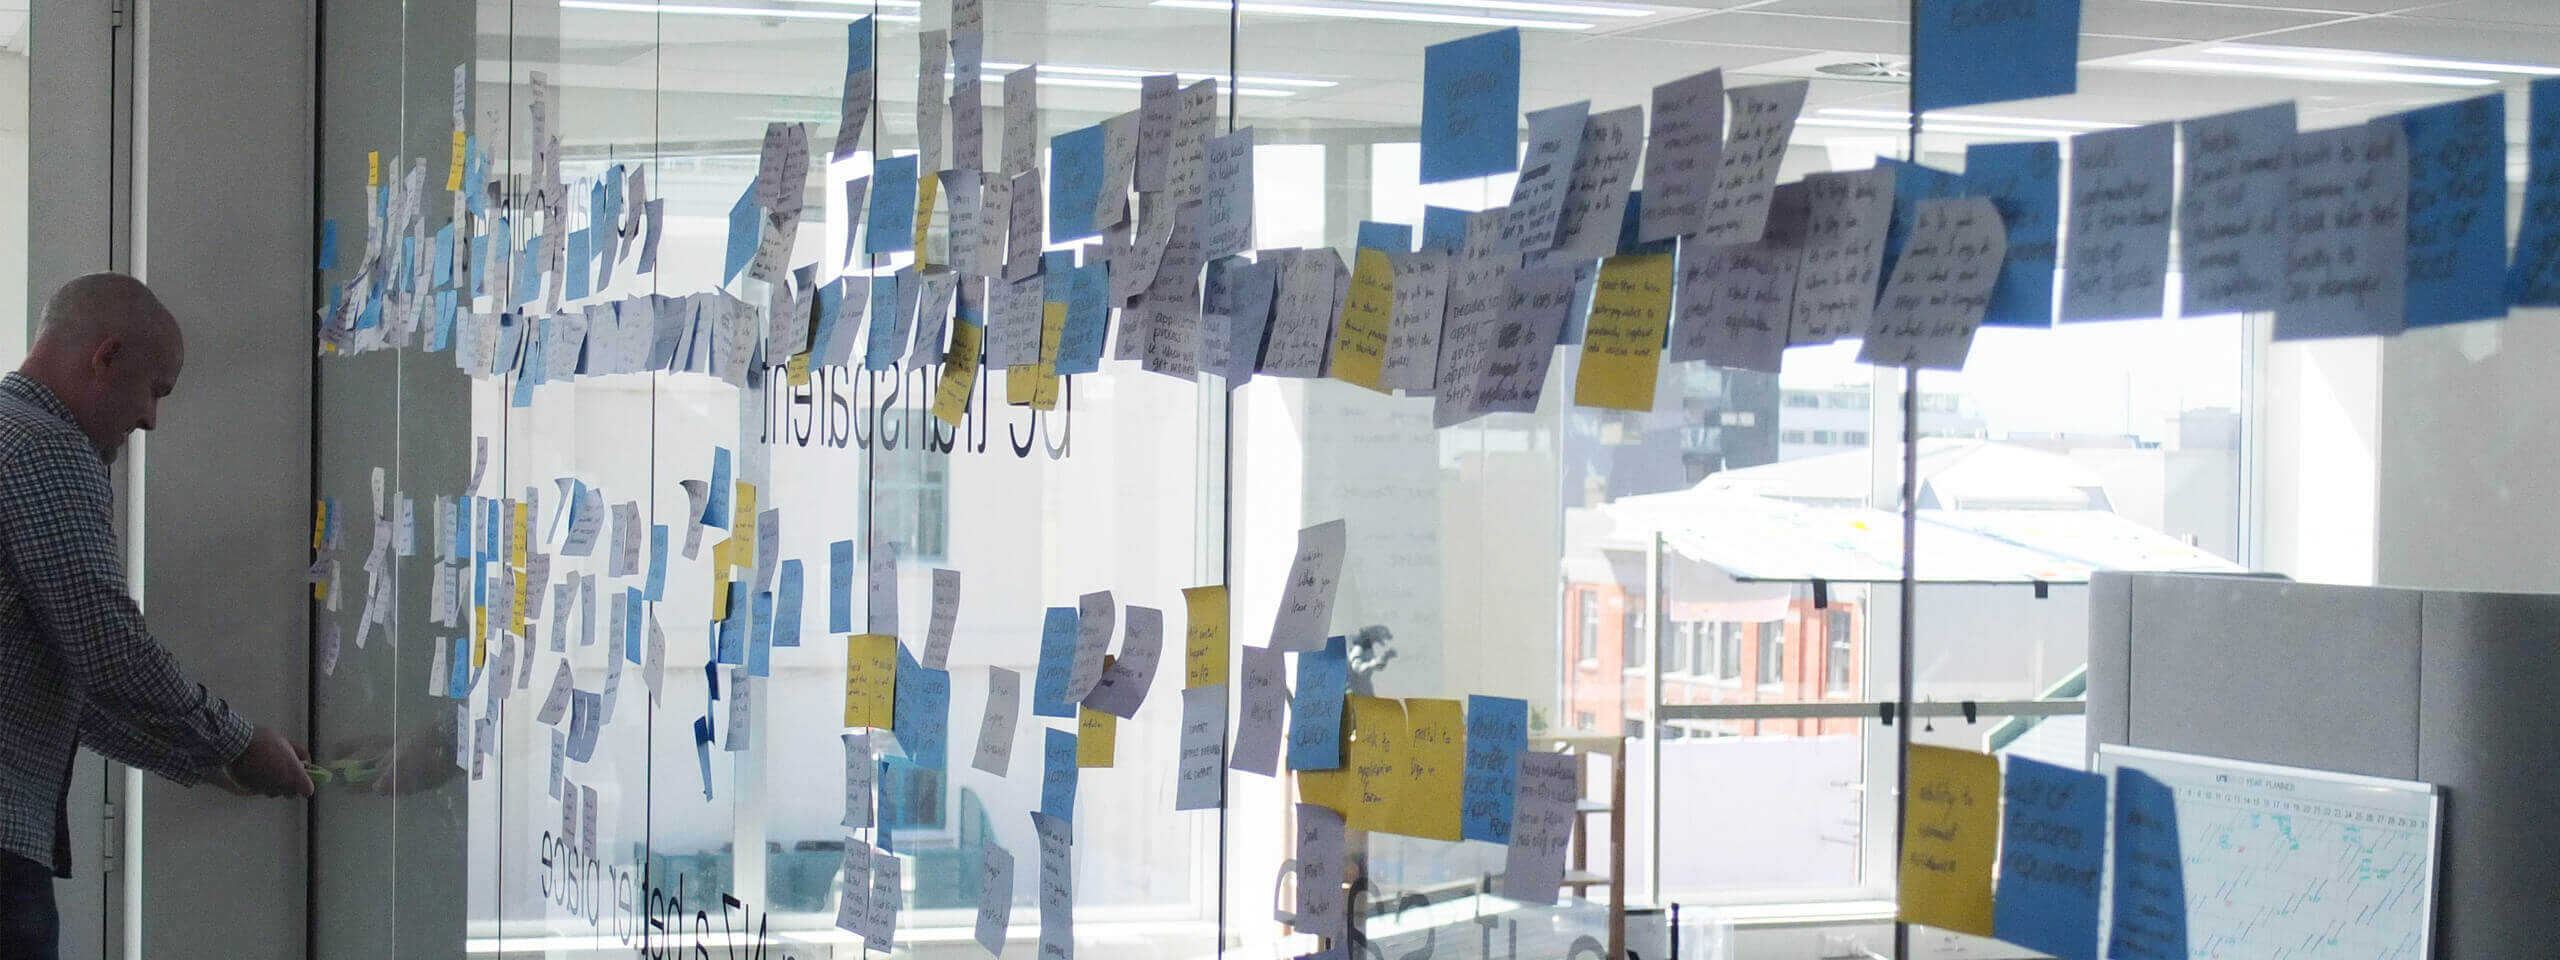 A project discovery workshop facilitator places post-its on a glass wall during user story mapping.